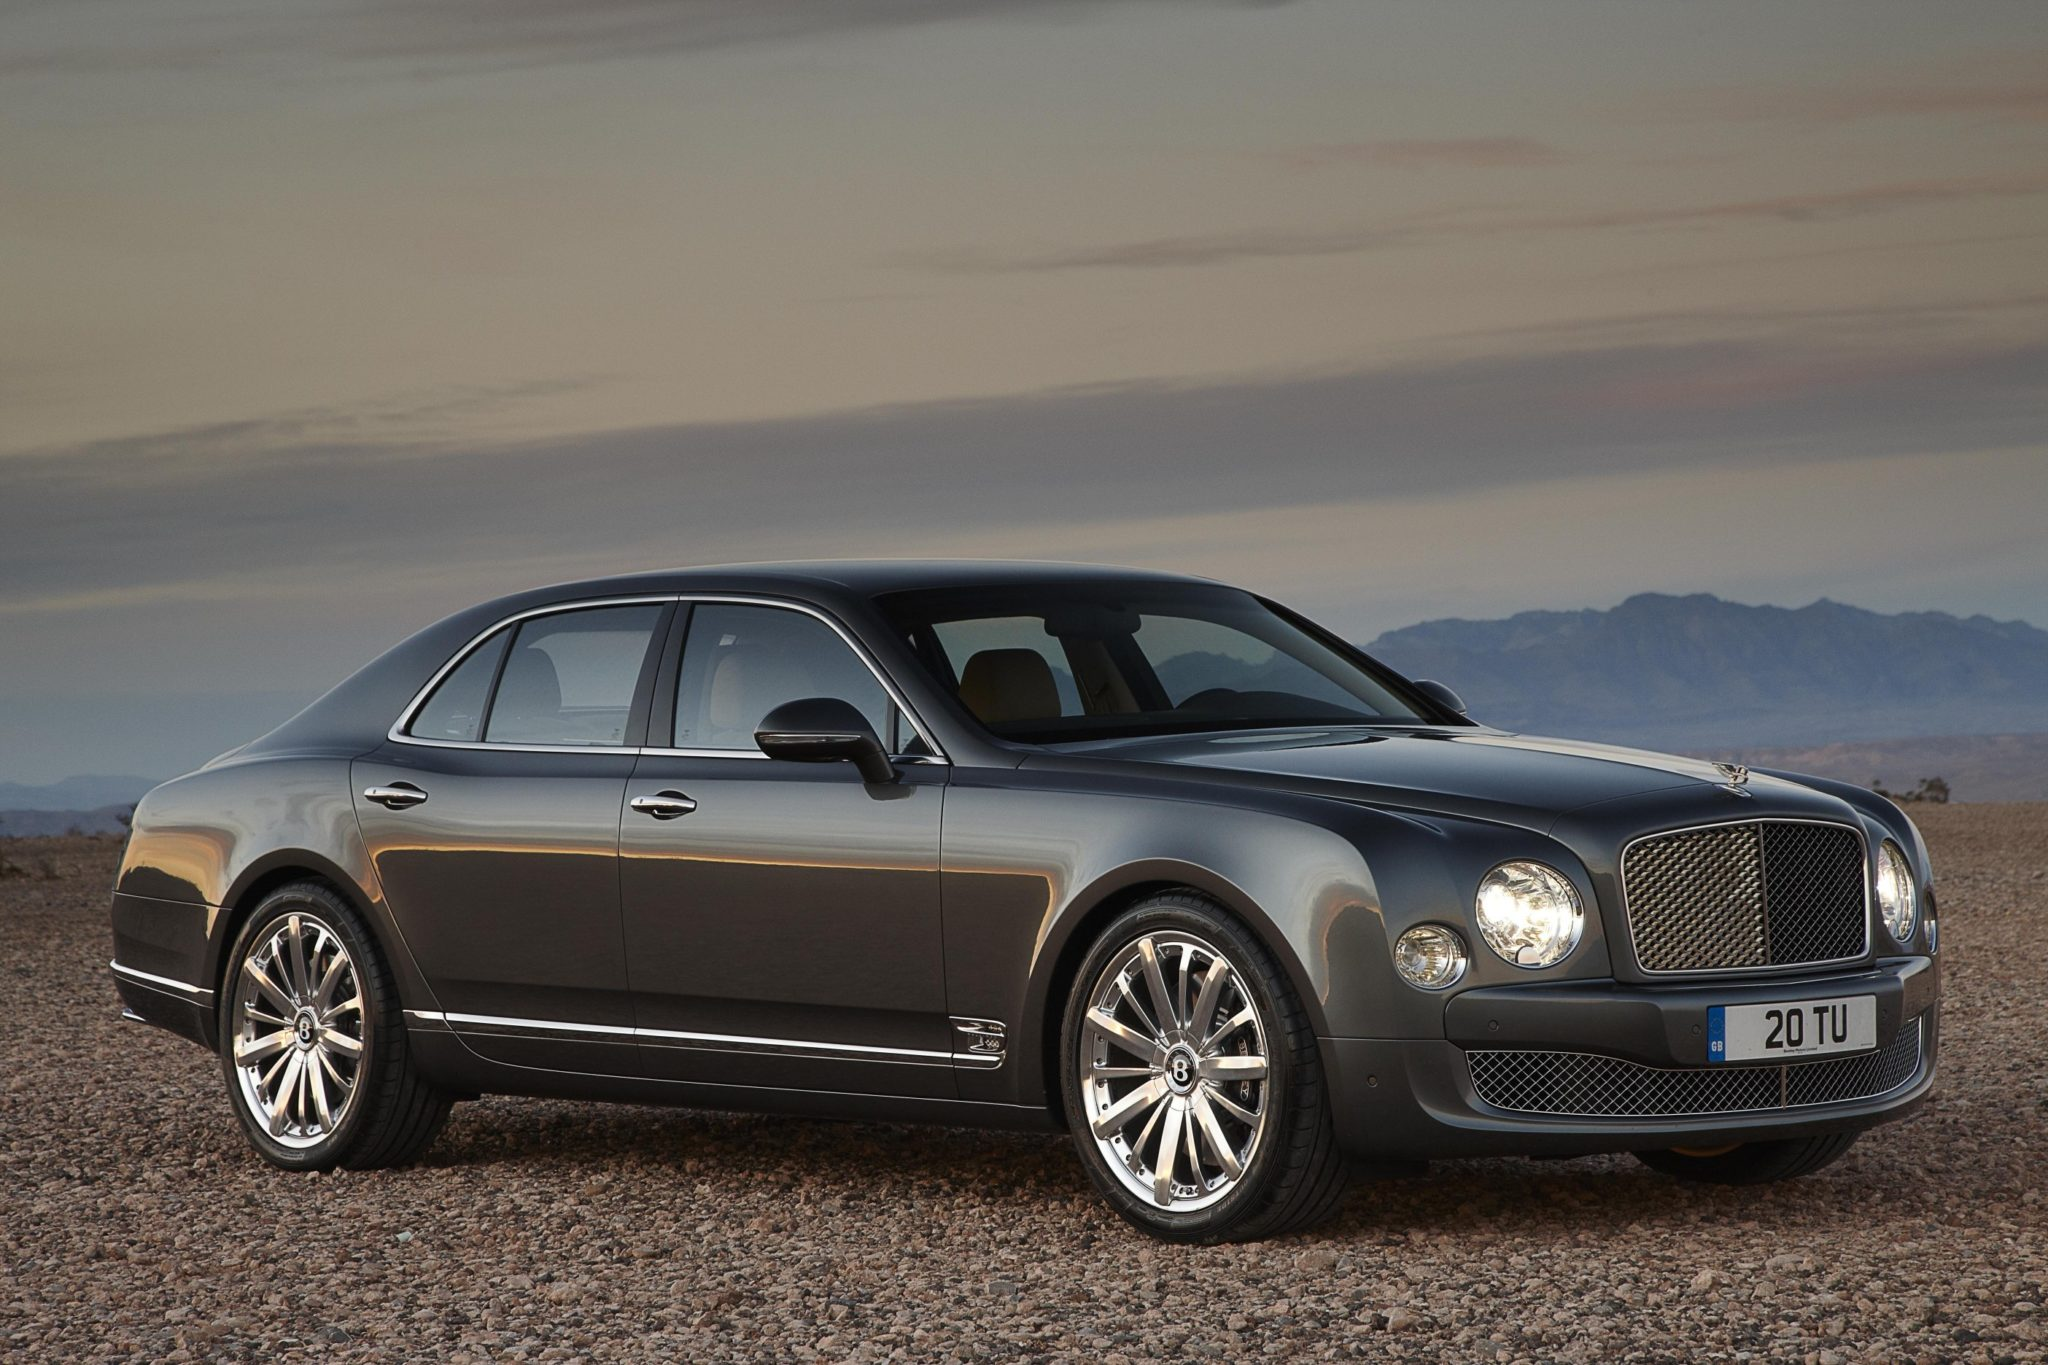 The 2013 Bentley Mulsanne Mulliner Driving Specification (Image: Bentley/Lifestyle Asia Singapore)